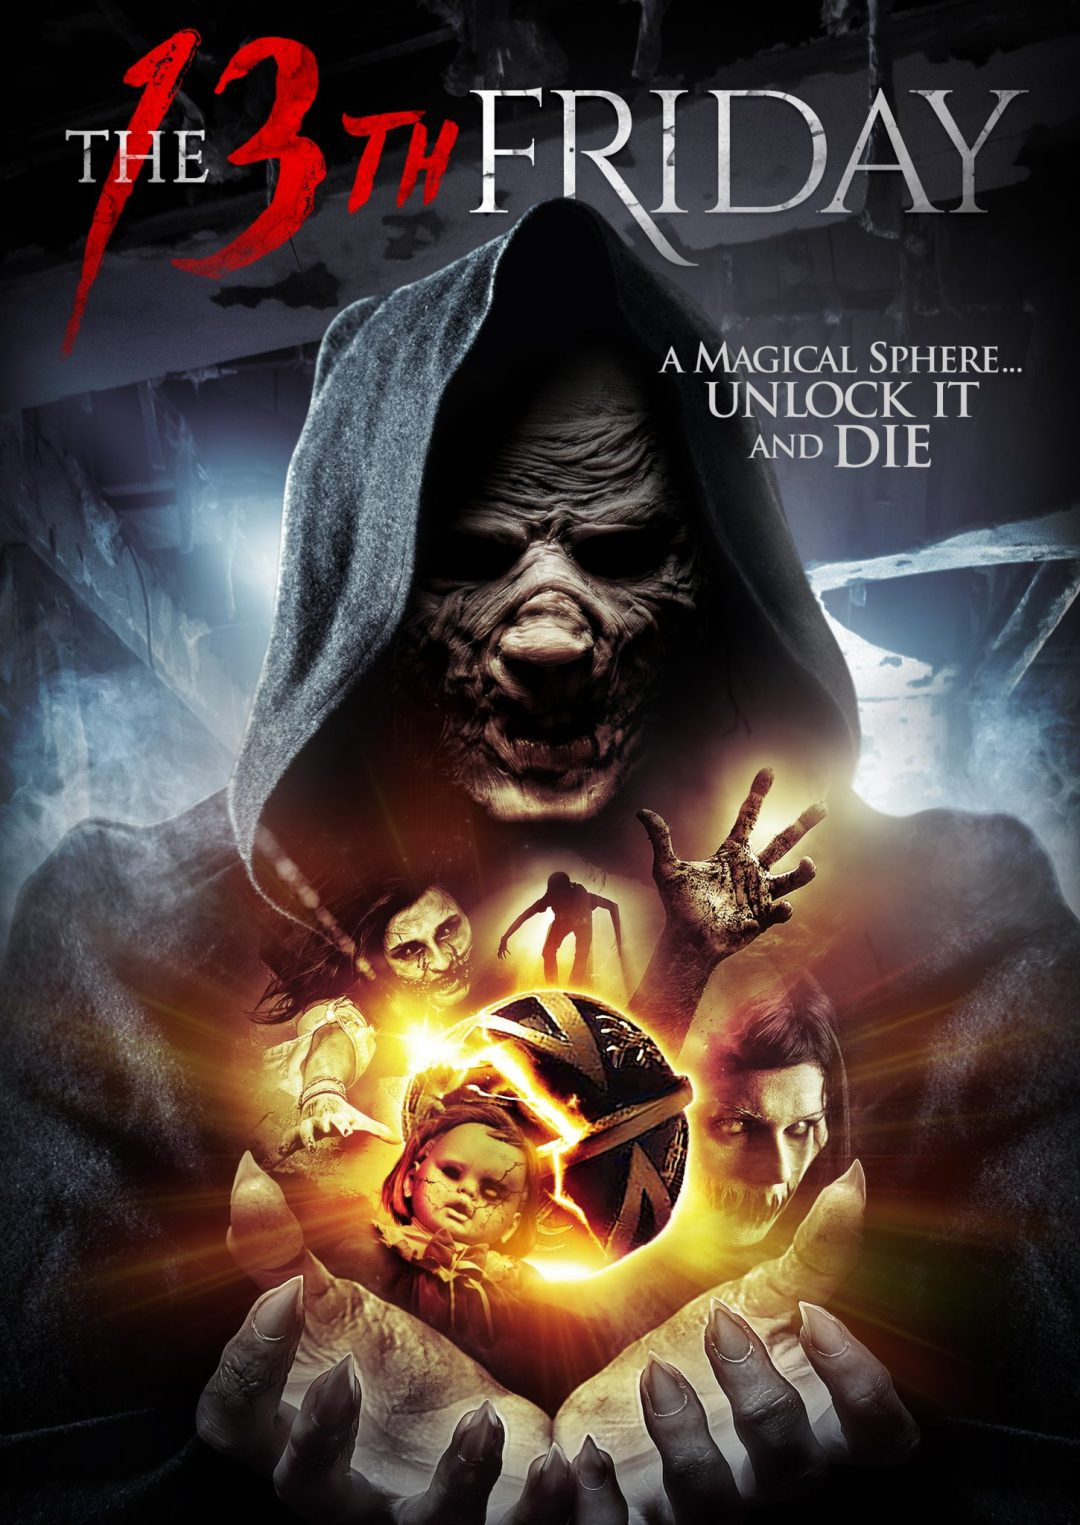 'The 13th Friday' Premieres on Digital this October!